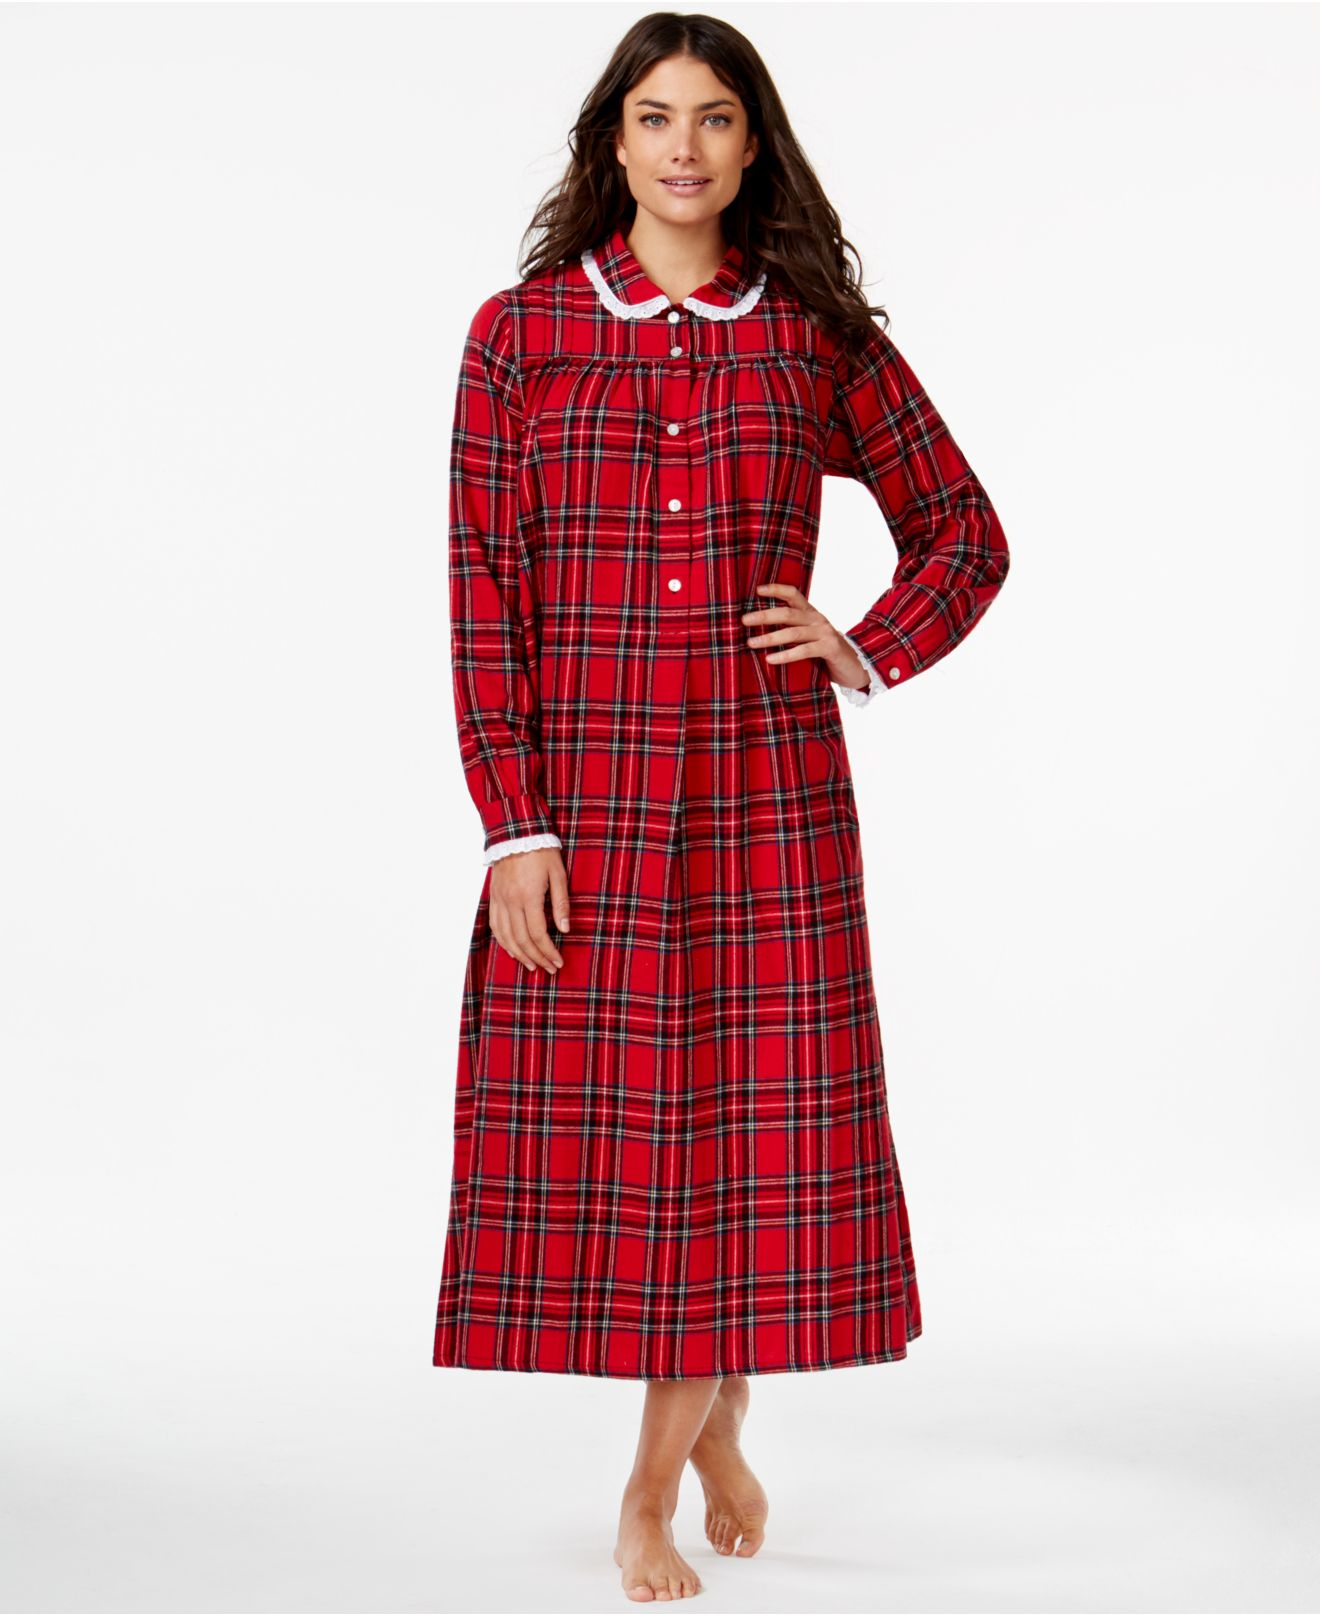 Lyst - Lanz Of Salzburg Collared Flannel Nightgown in Red